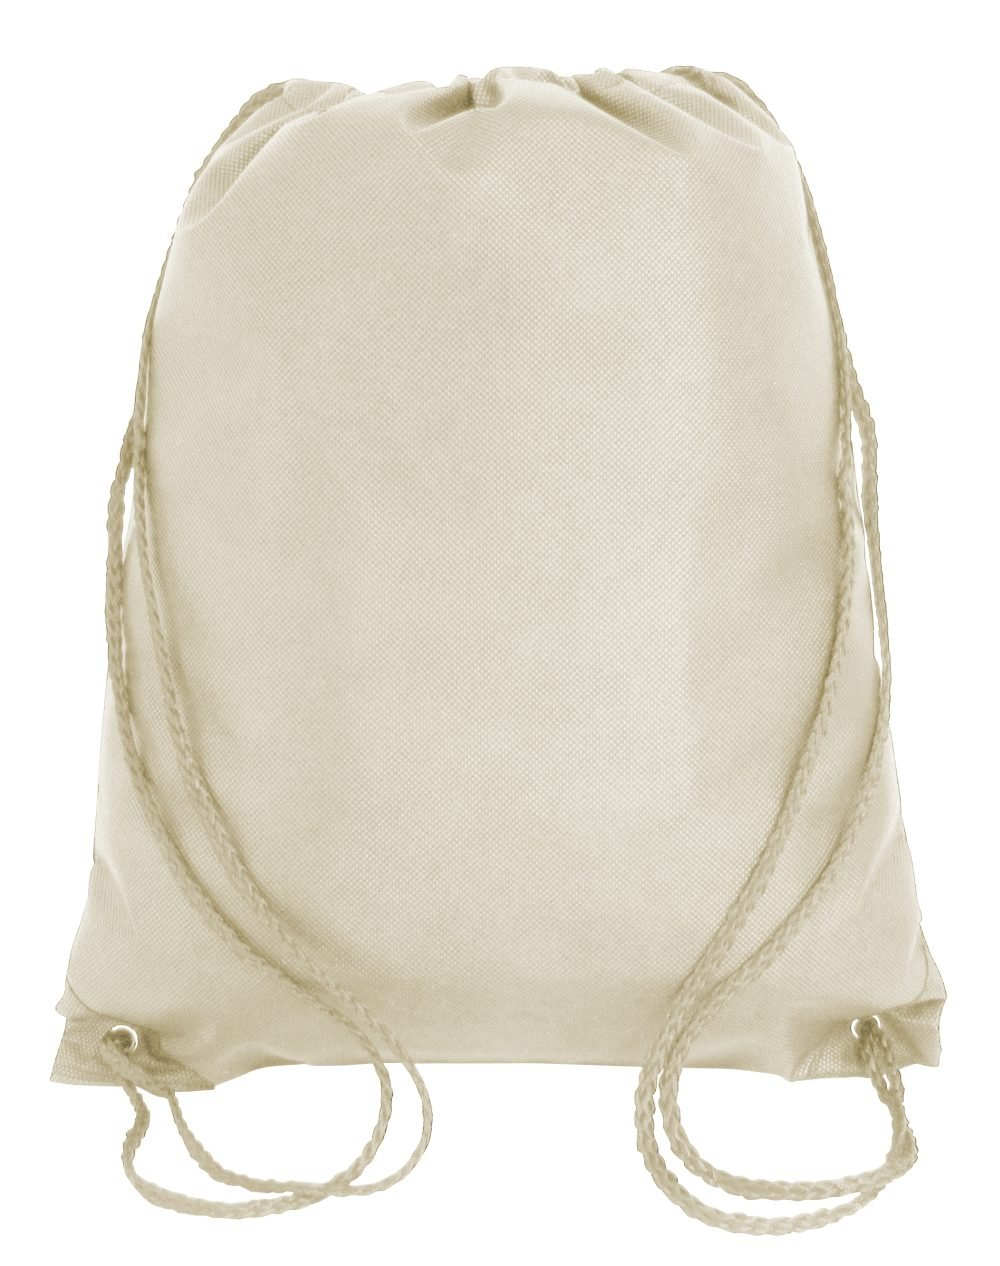 Drawstring Tote Backpack Non-Woven Cinch Sack Bag Swim Camp Party Favor 25 Pack (Natural)